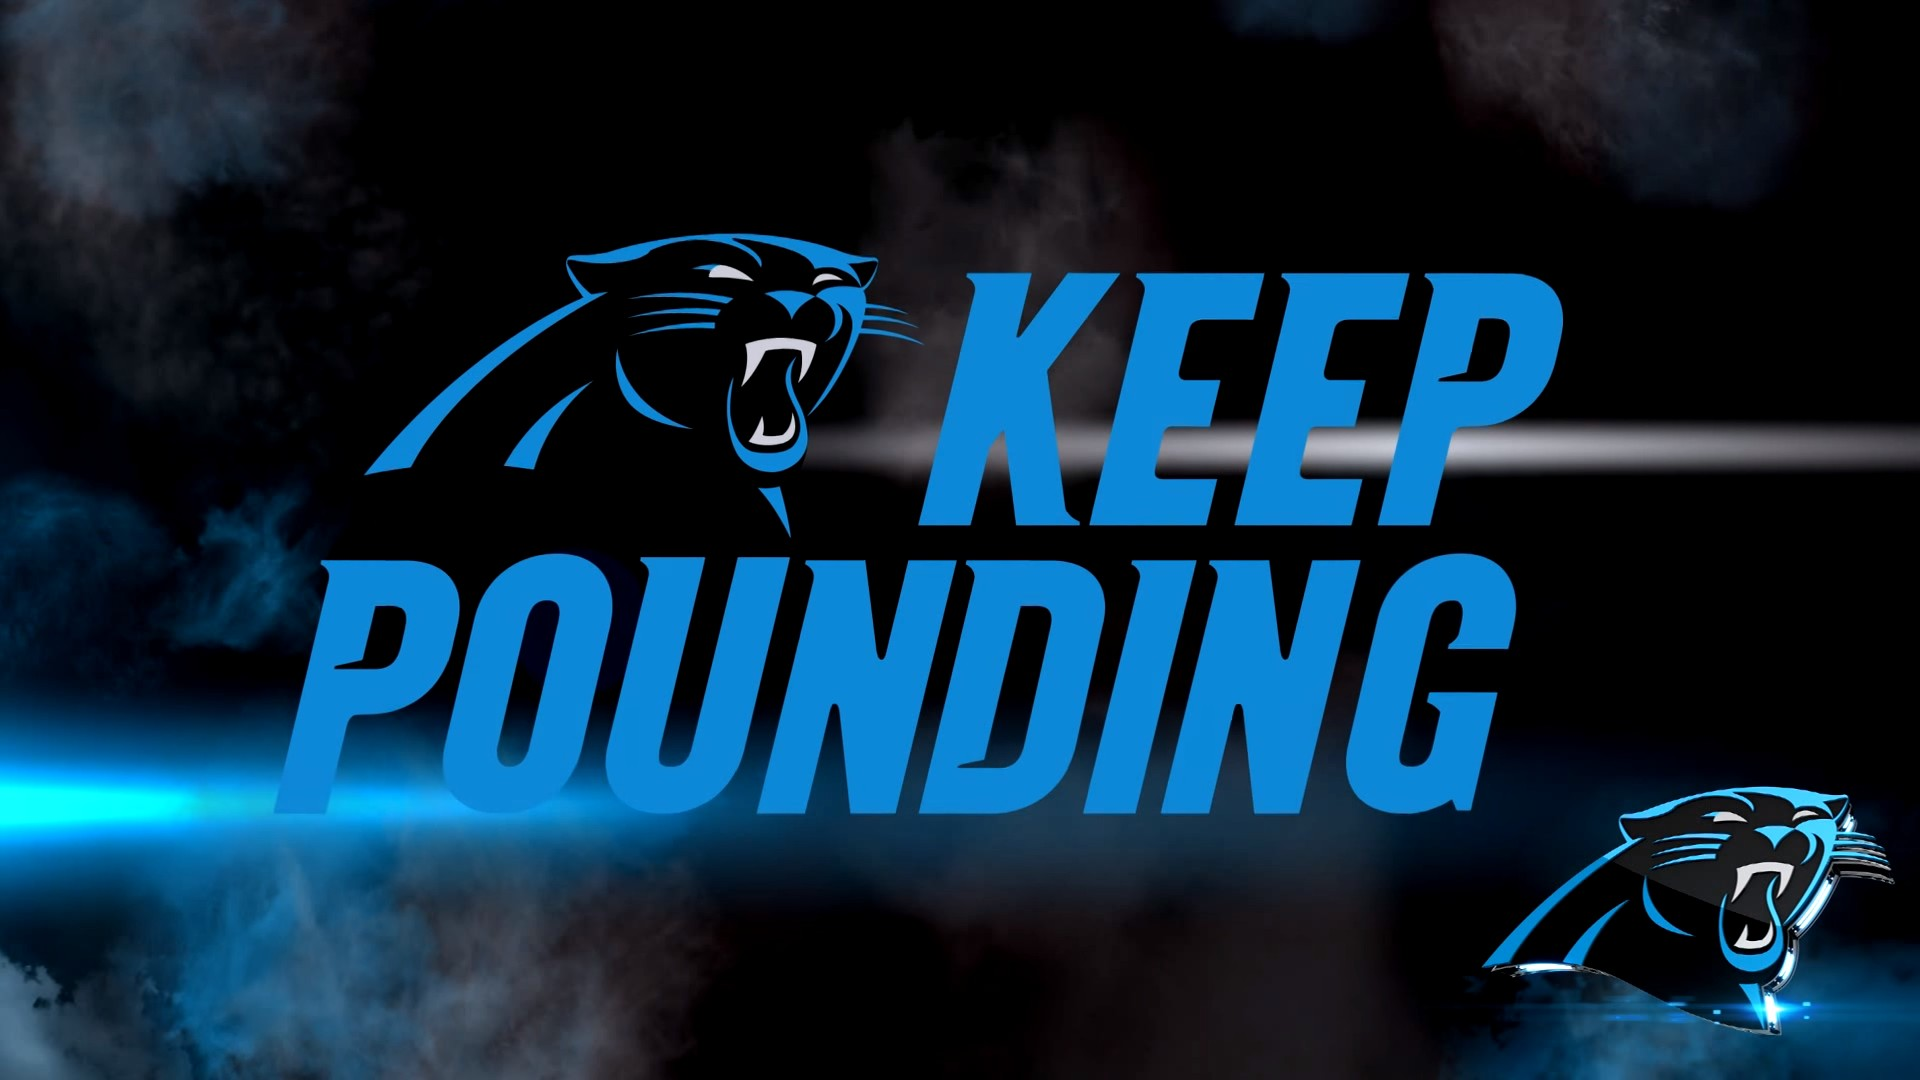 Carolina Panthers Wallpaper Iphone Hd Nike Backgrounds For Iphone